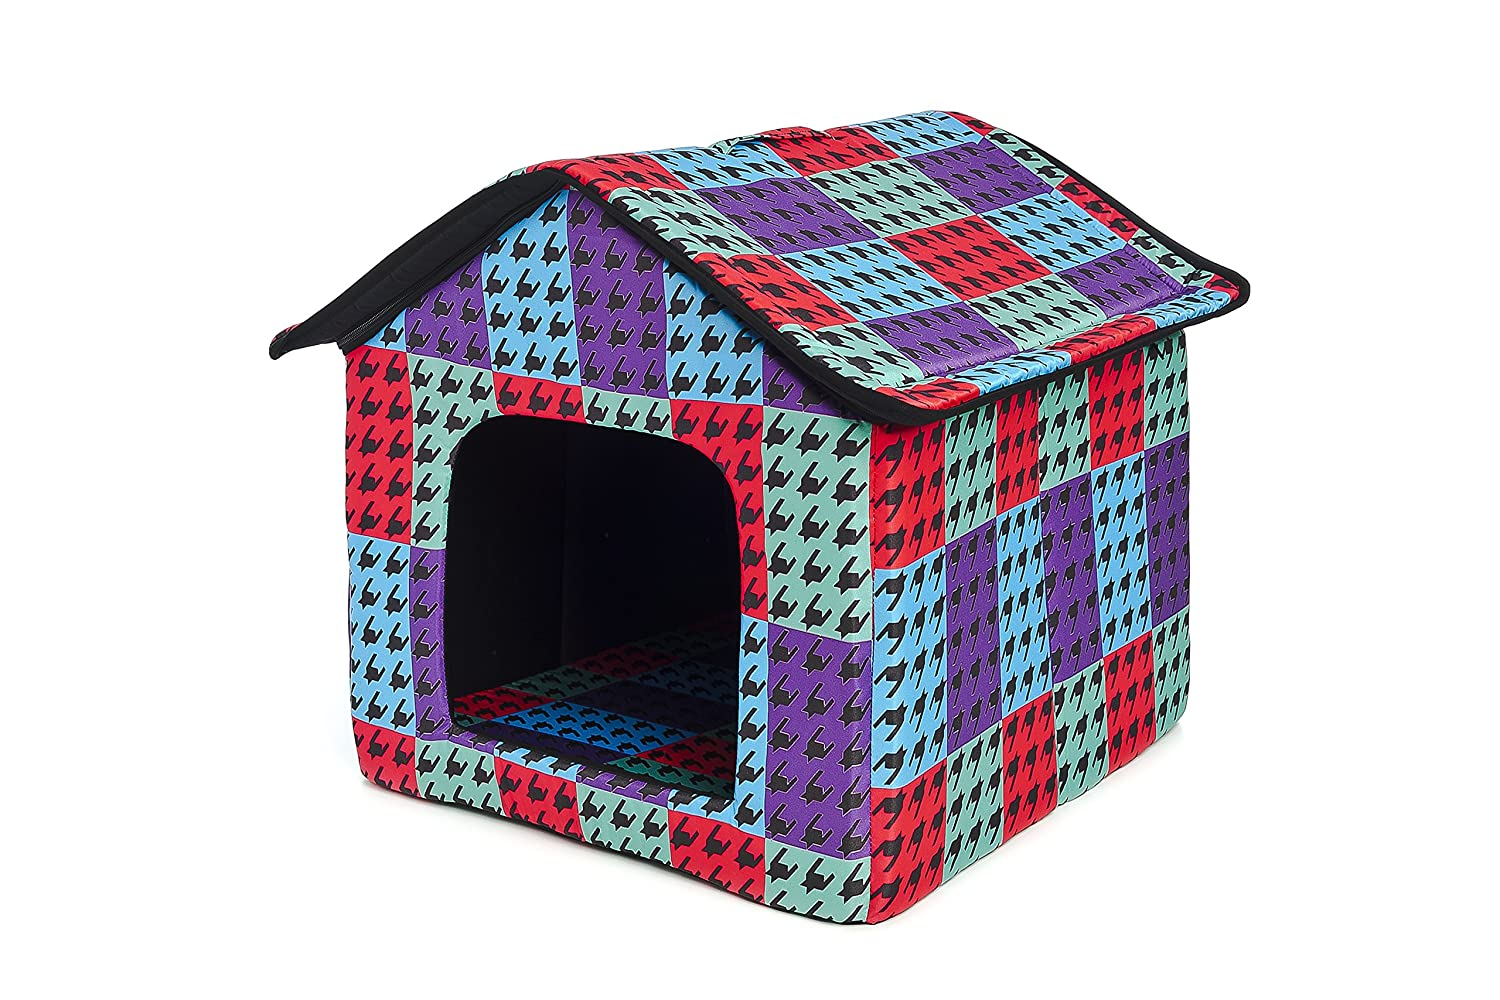 Ferribiella Cotton Dog Basket with Houndstooth Design 45 x 47 x 46 cm